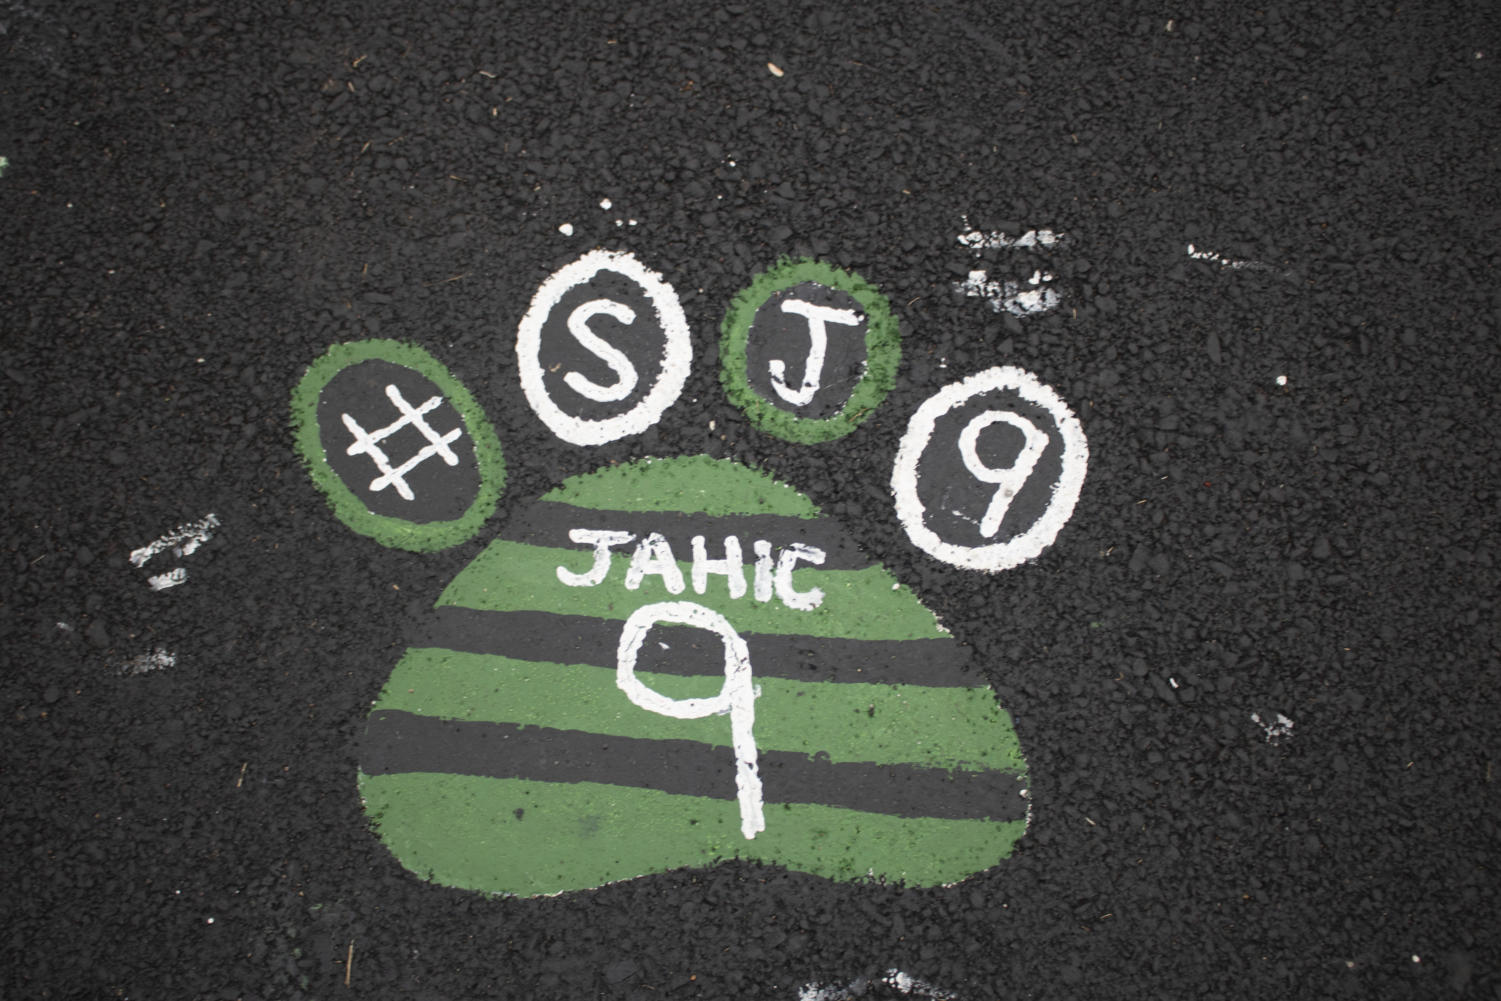 Senior Senad Jahic's paw print Photo by Kyle Becherer